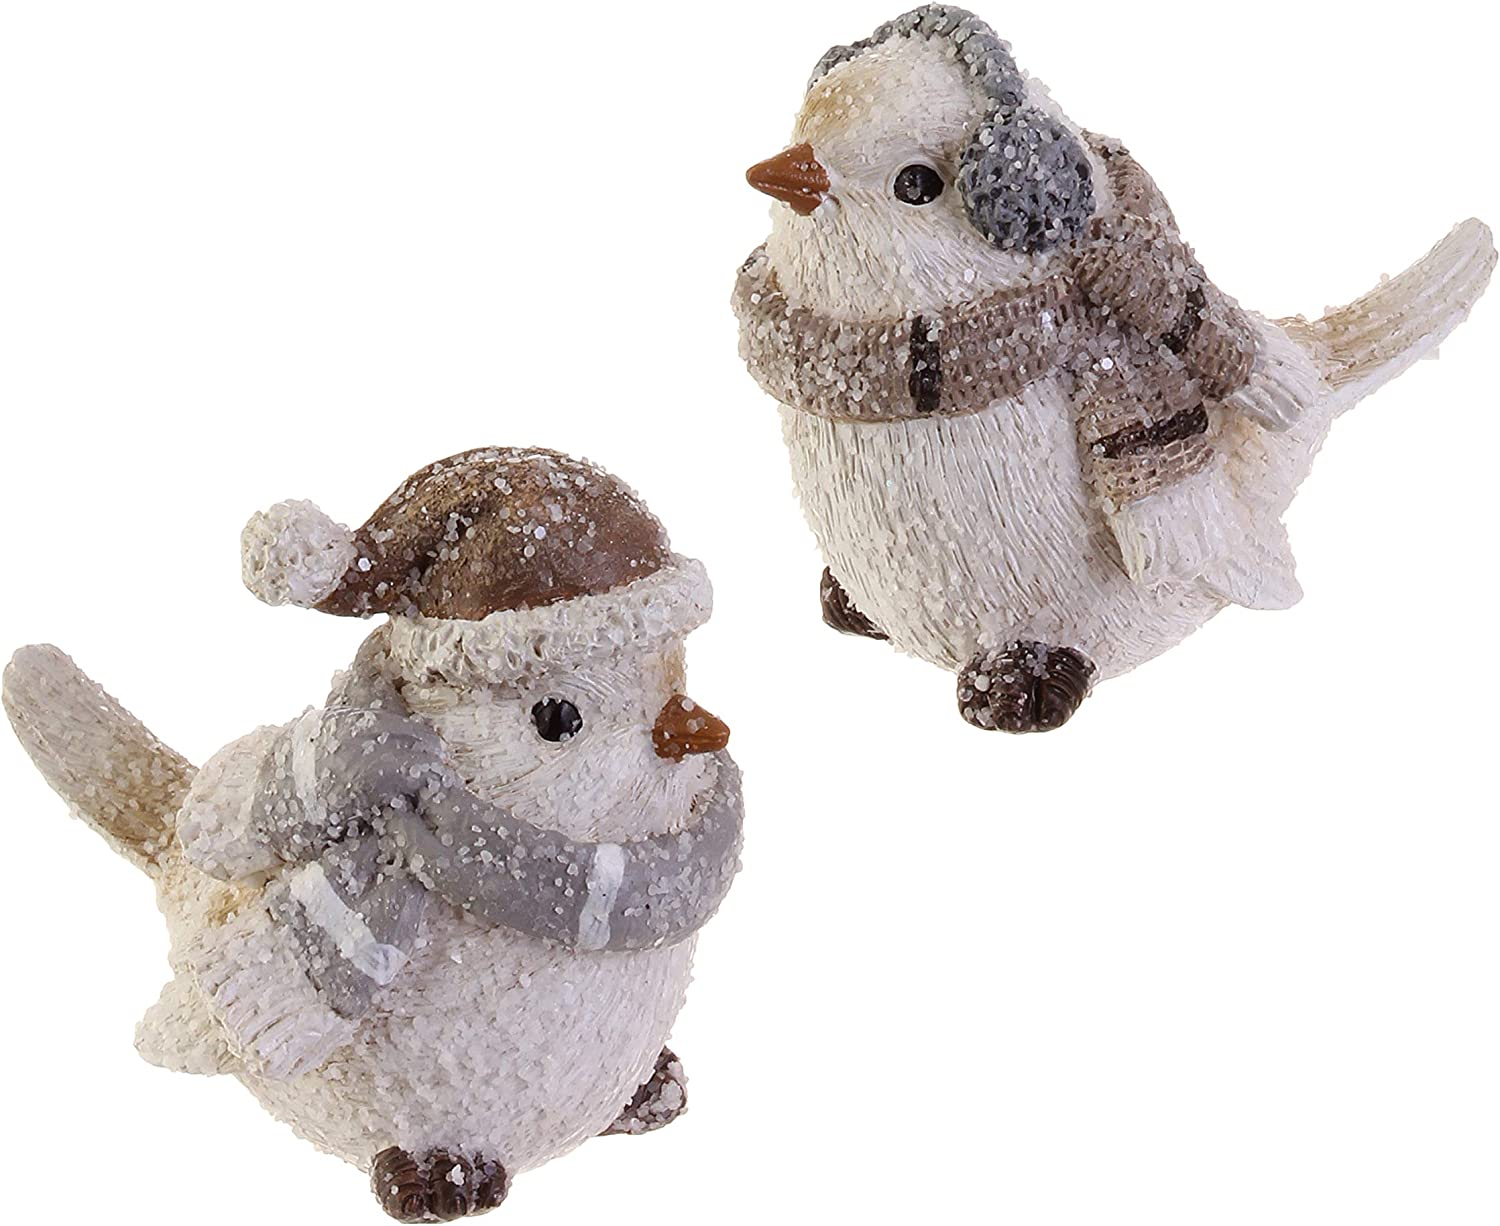 RAZ Imports Wintry White Resin Bird Figurines - Set of 2 Assorted